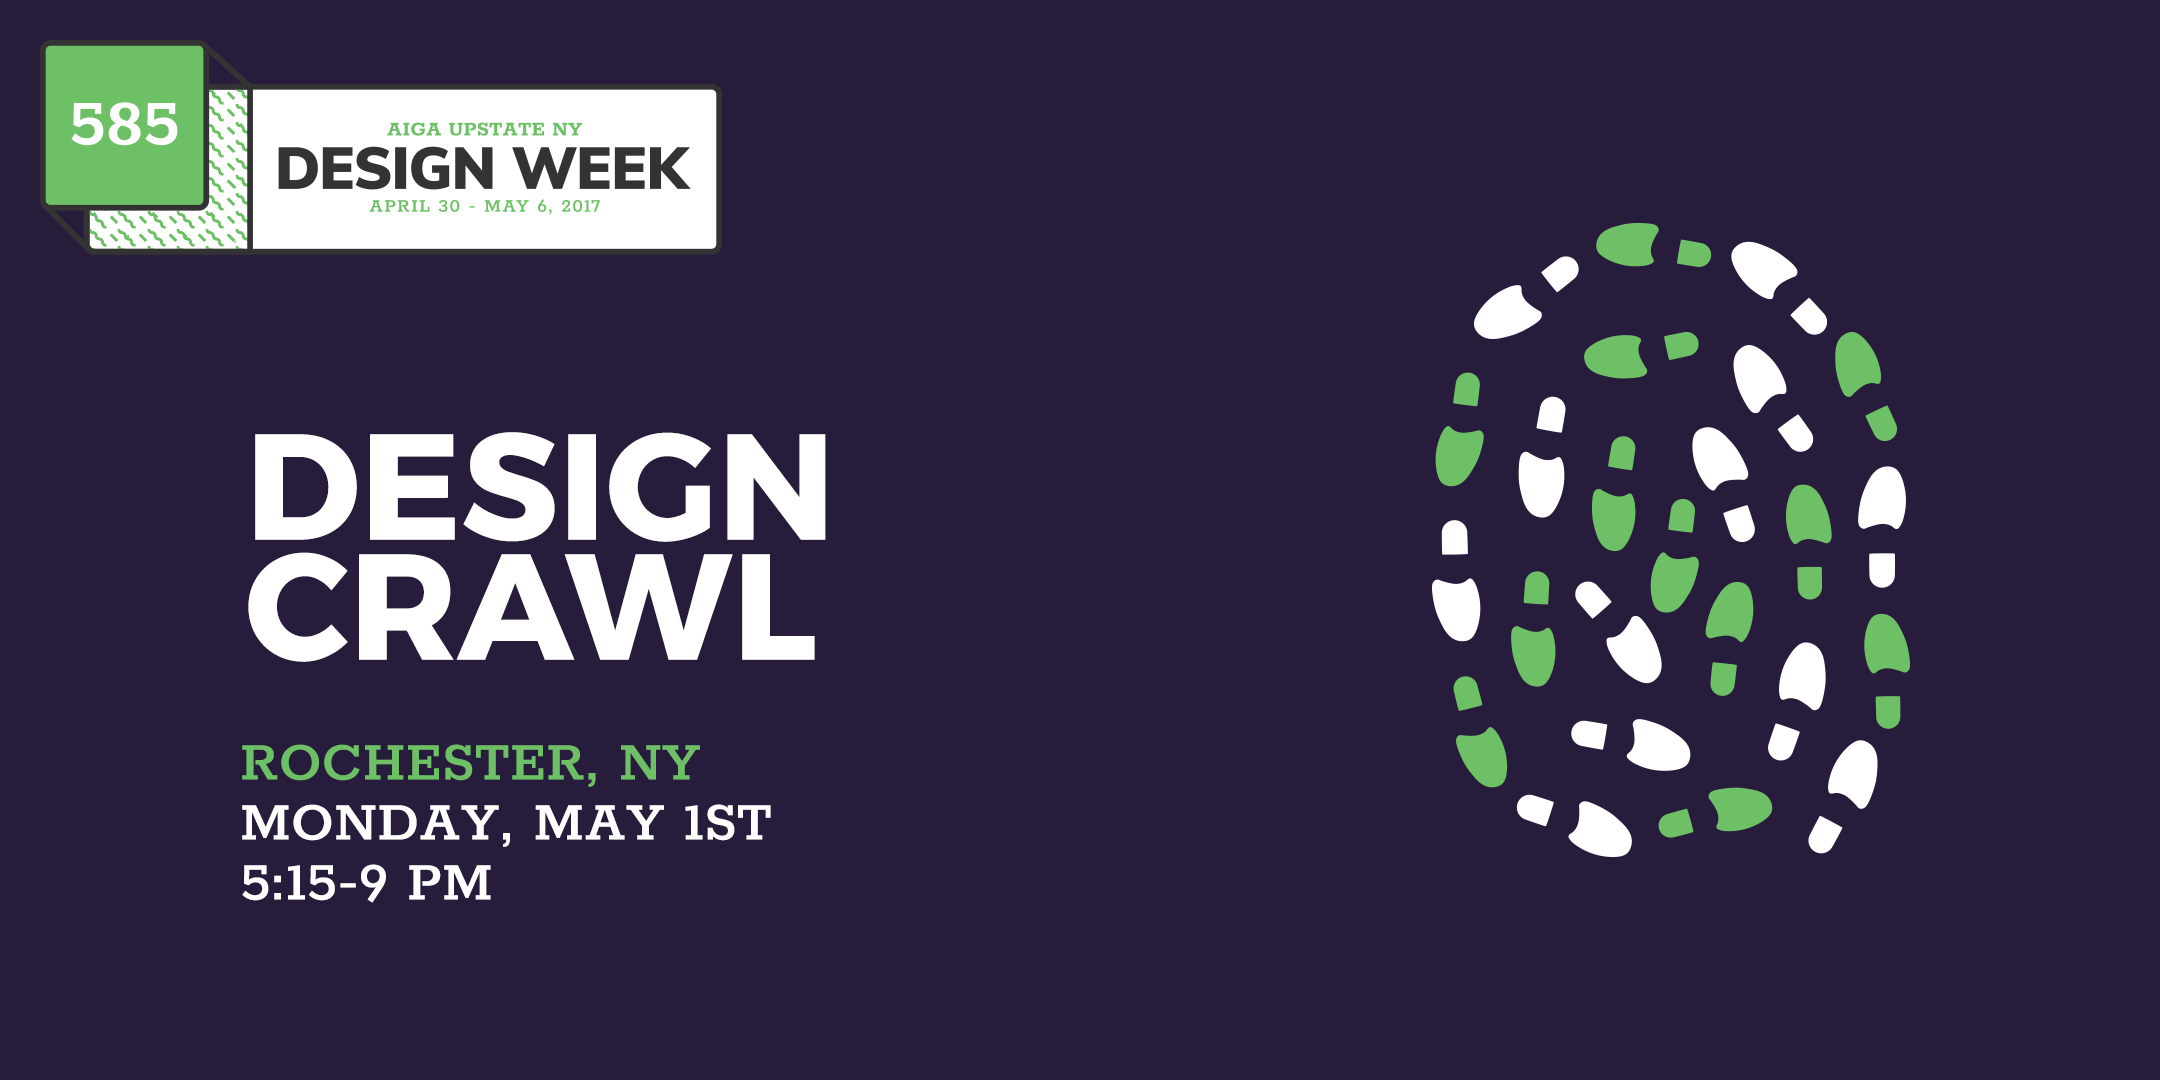 AIGA UPSTNY Design Week: Design Crawl (Roches